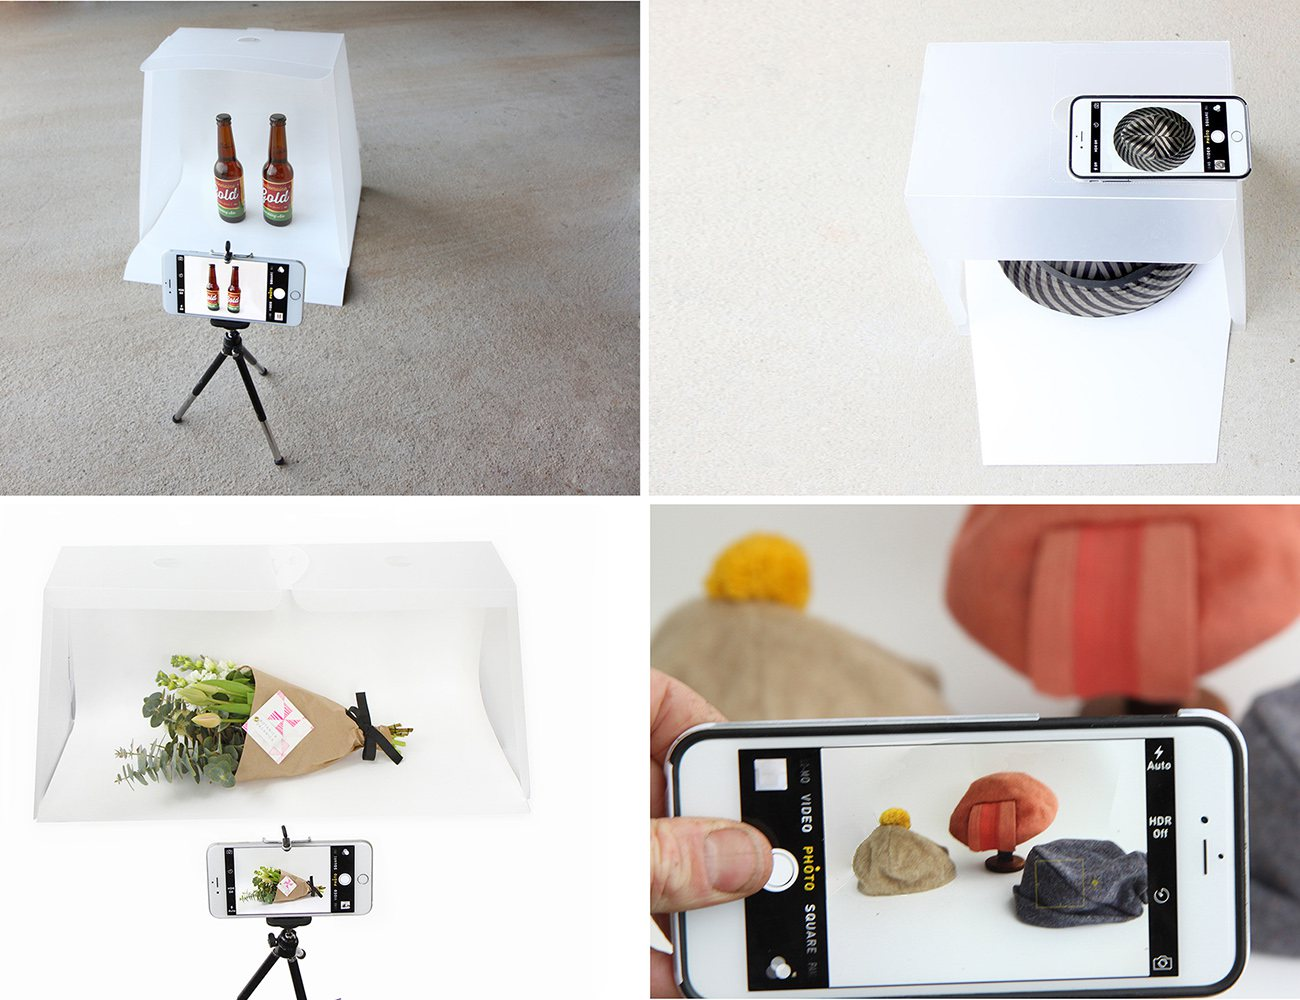 LightcasePro Photo Studio for you Smartphone or DSLR